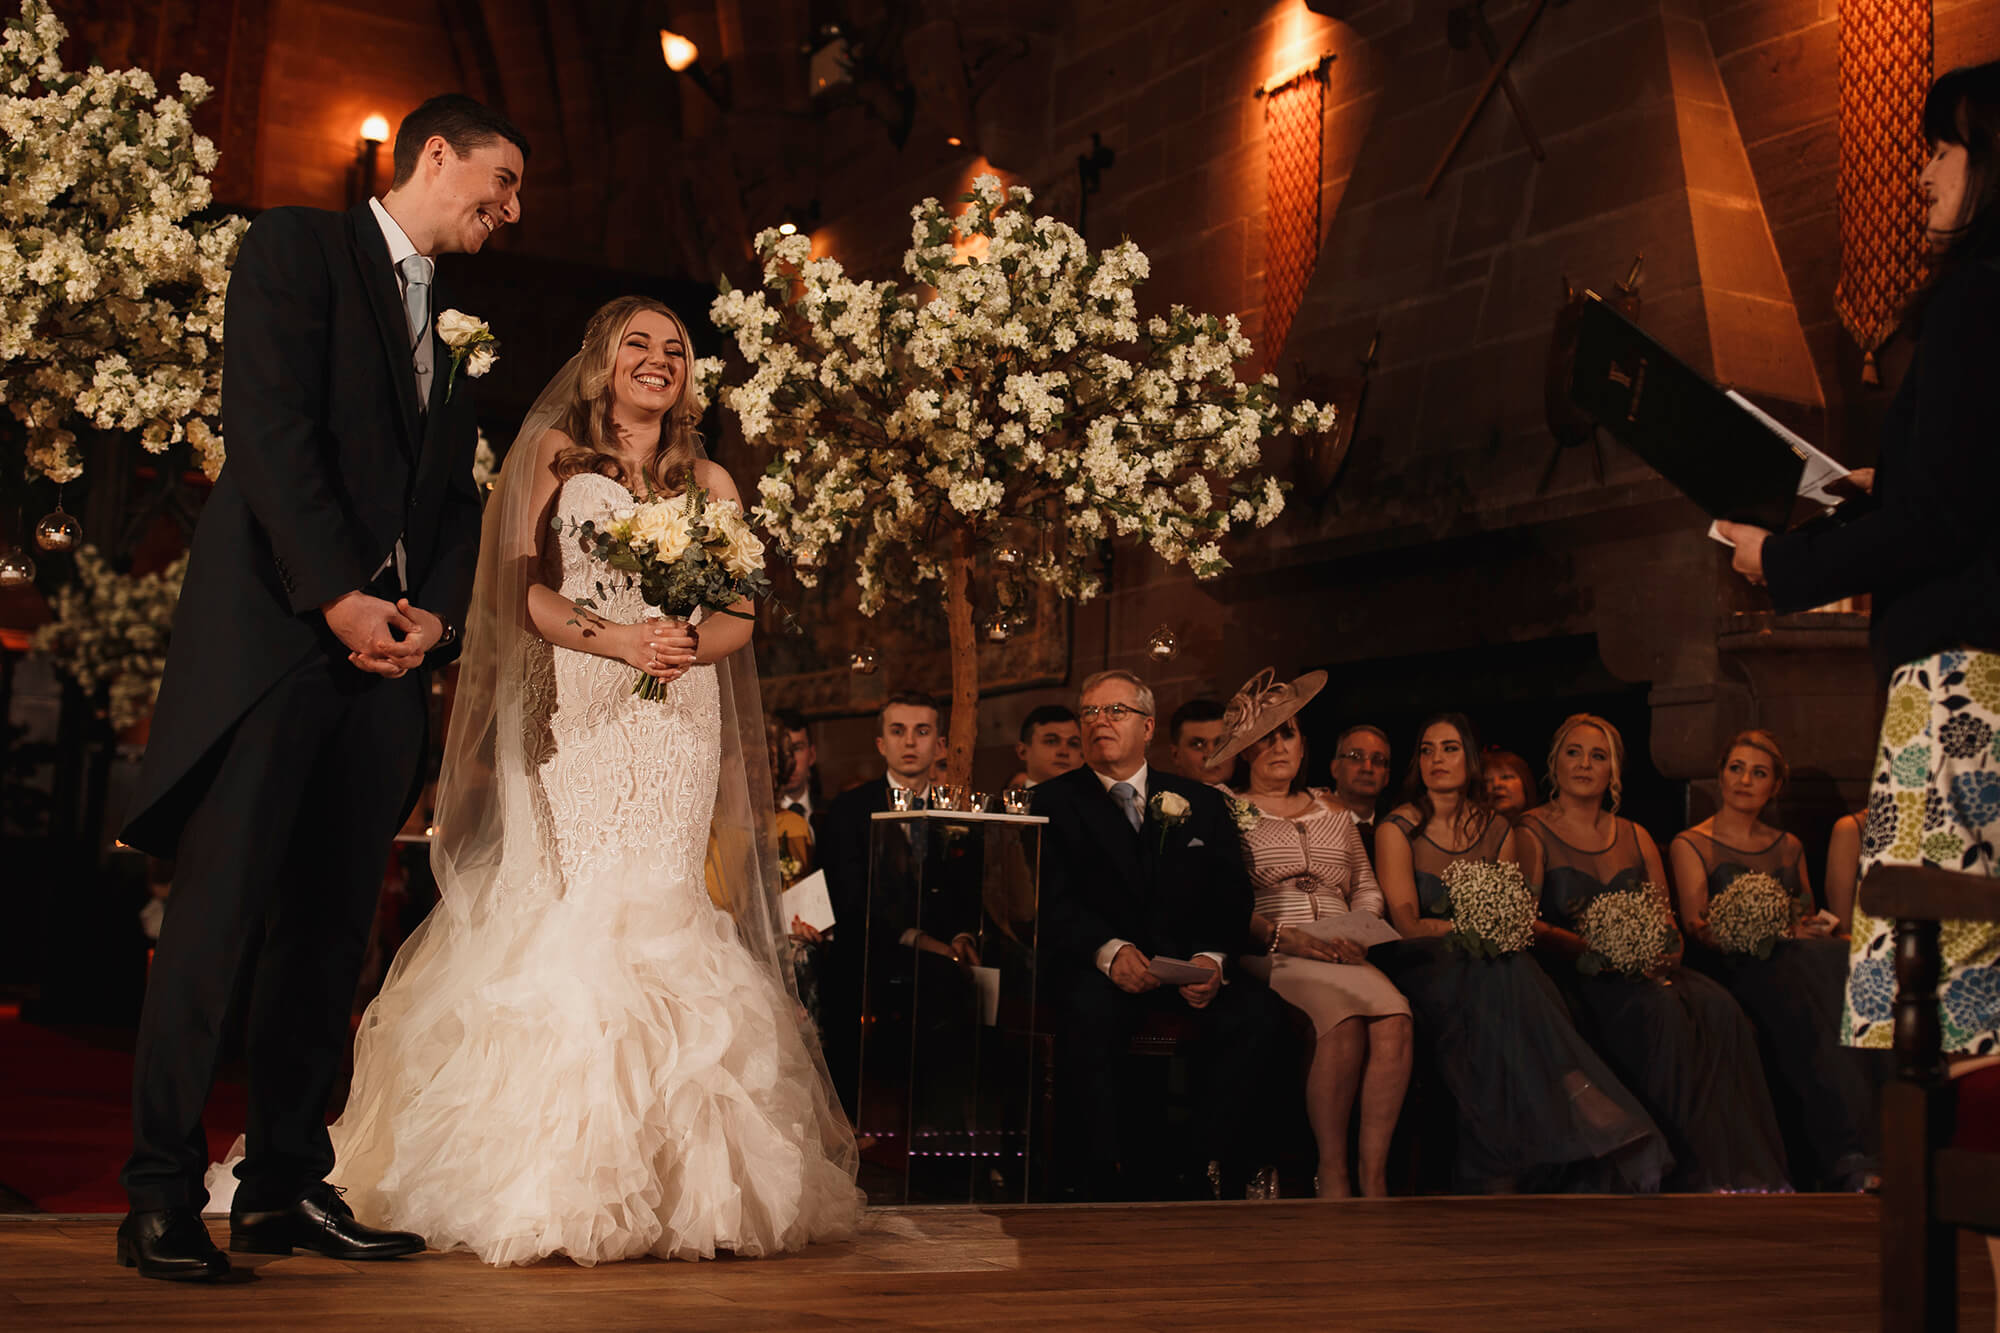 getting married at Peckforton Castle